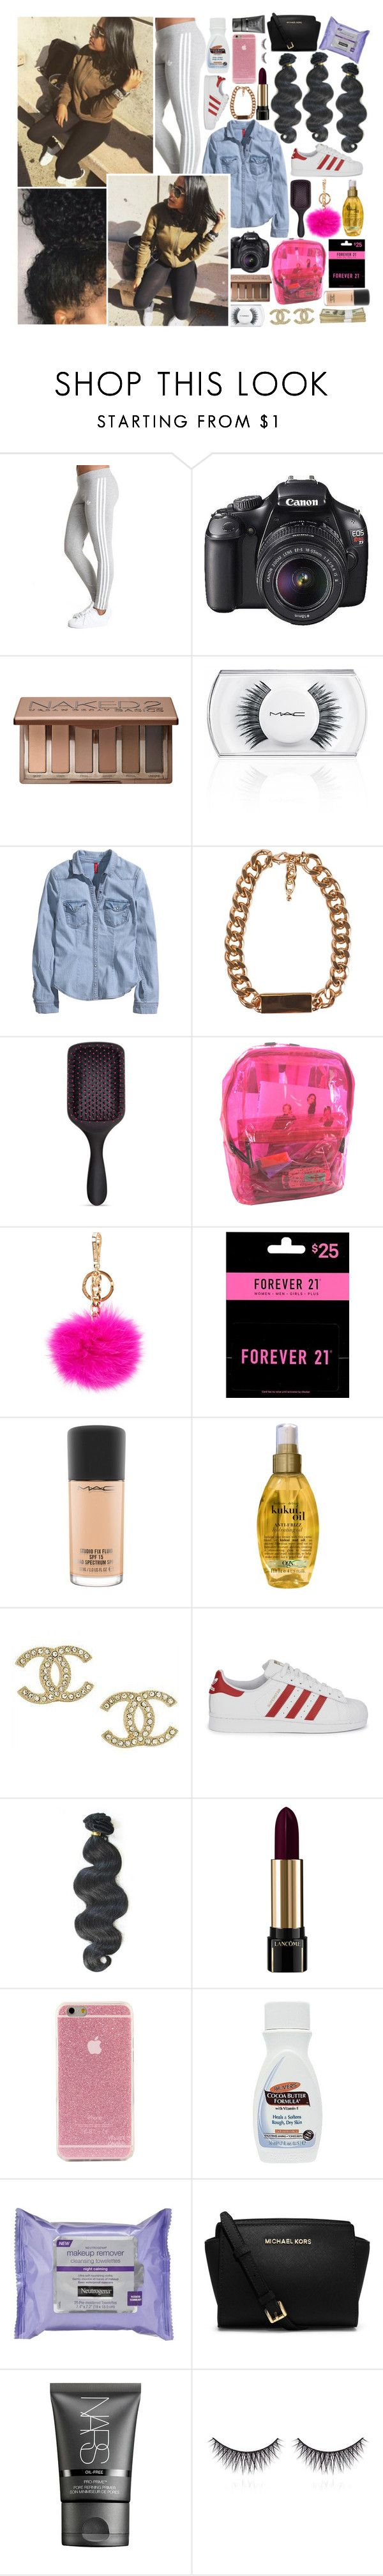 """""""[ O2 ) 'It goes down in the dm'"""" by prettyflacko-x ❤ liked on Polyvore featuring Urban Decay, MAC Cosmetics, H&M, JFR, MICHAEL Michael Kors, Forever 21, Organix, Chanel, adidas Originals and &K"""